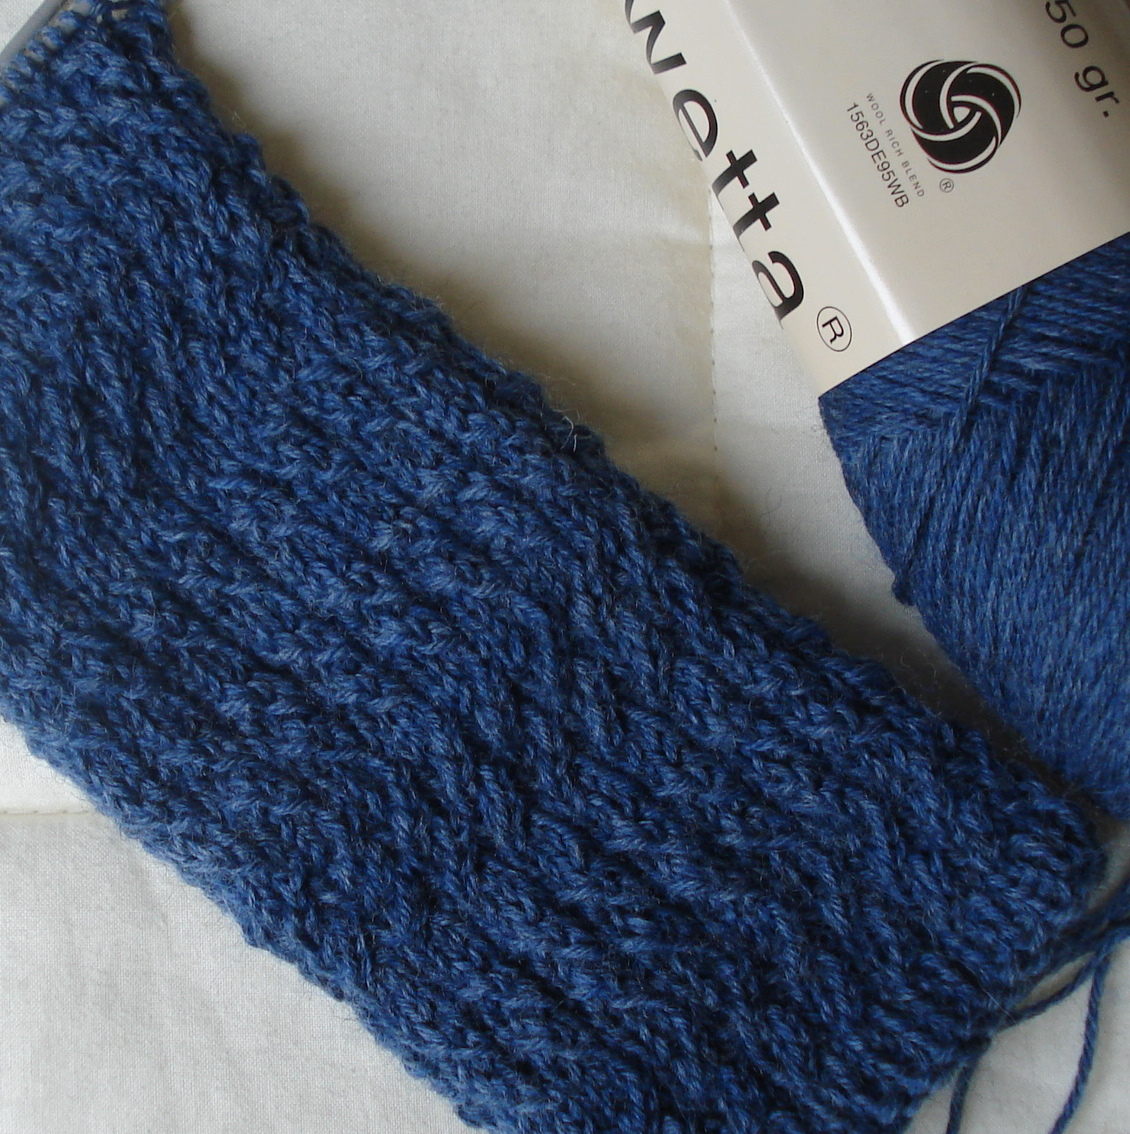 Sock Monkey Knitting Pattern Free : Knit forwards {understand backwards}: Tendrils